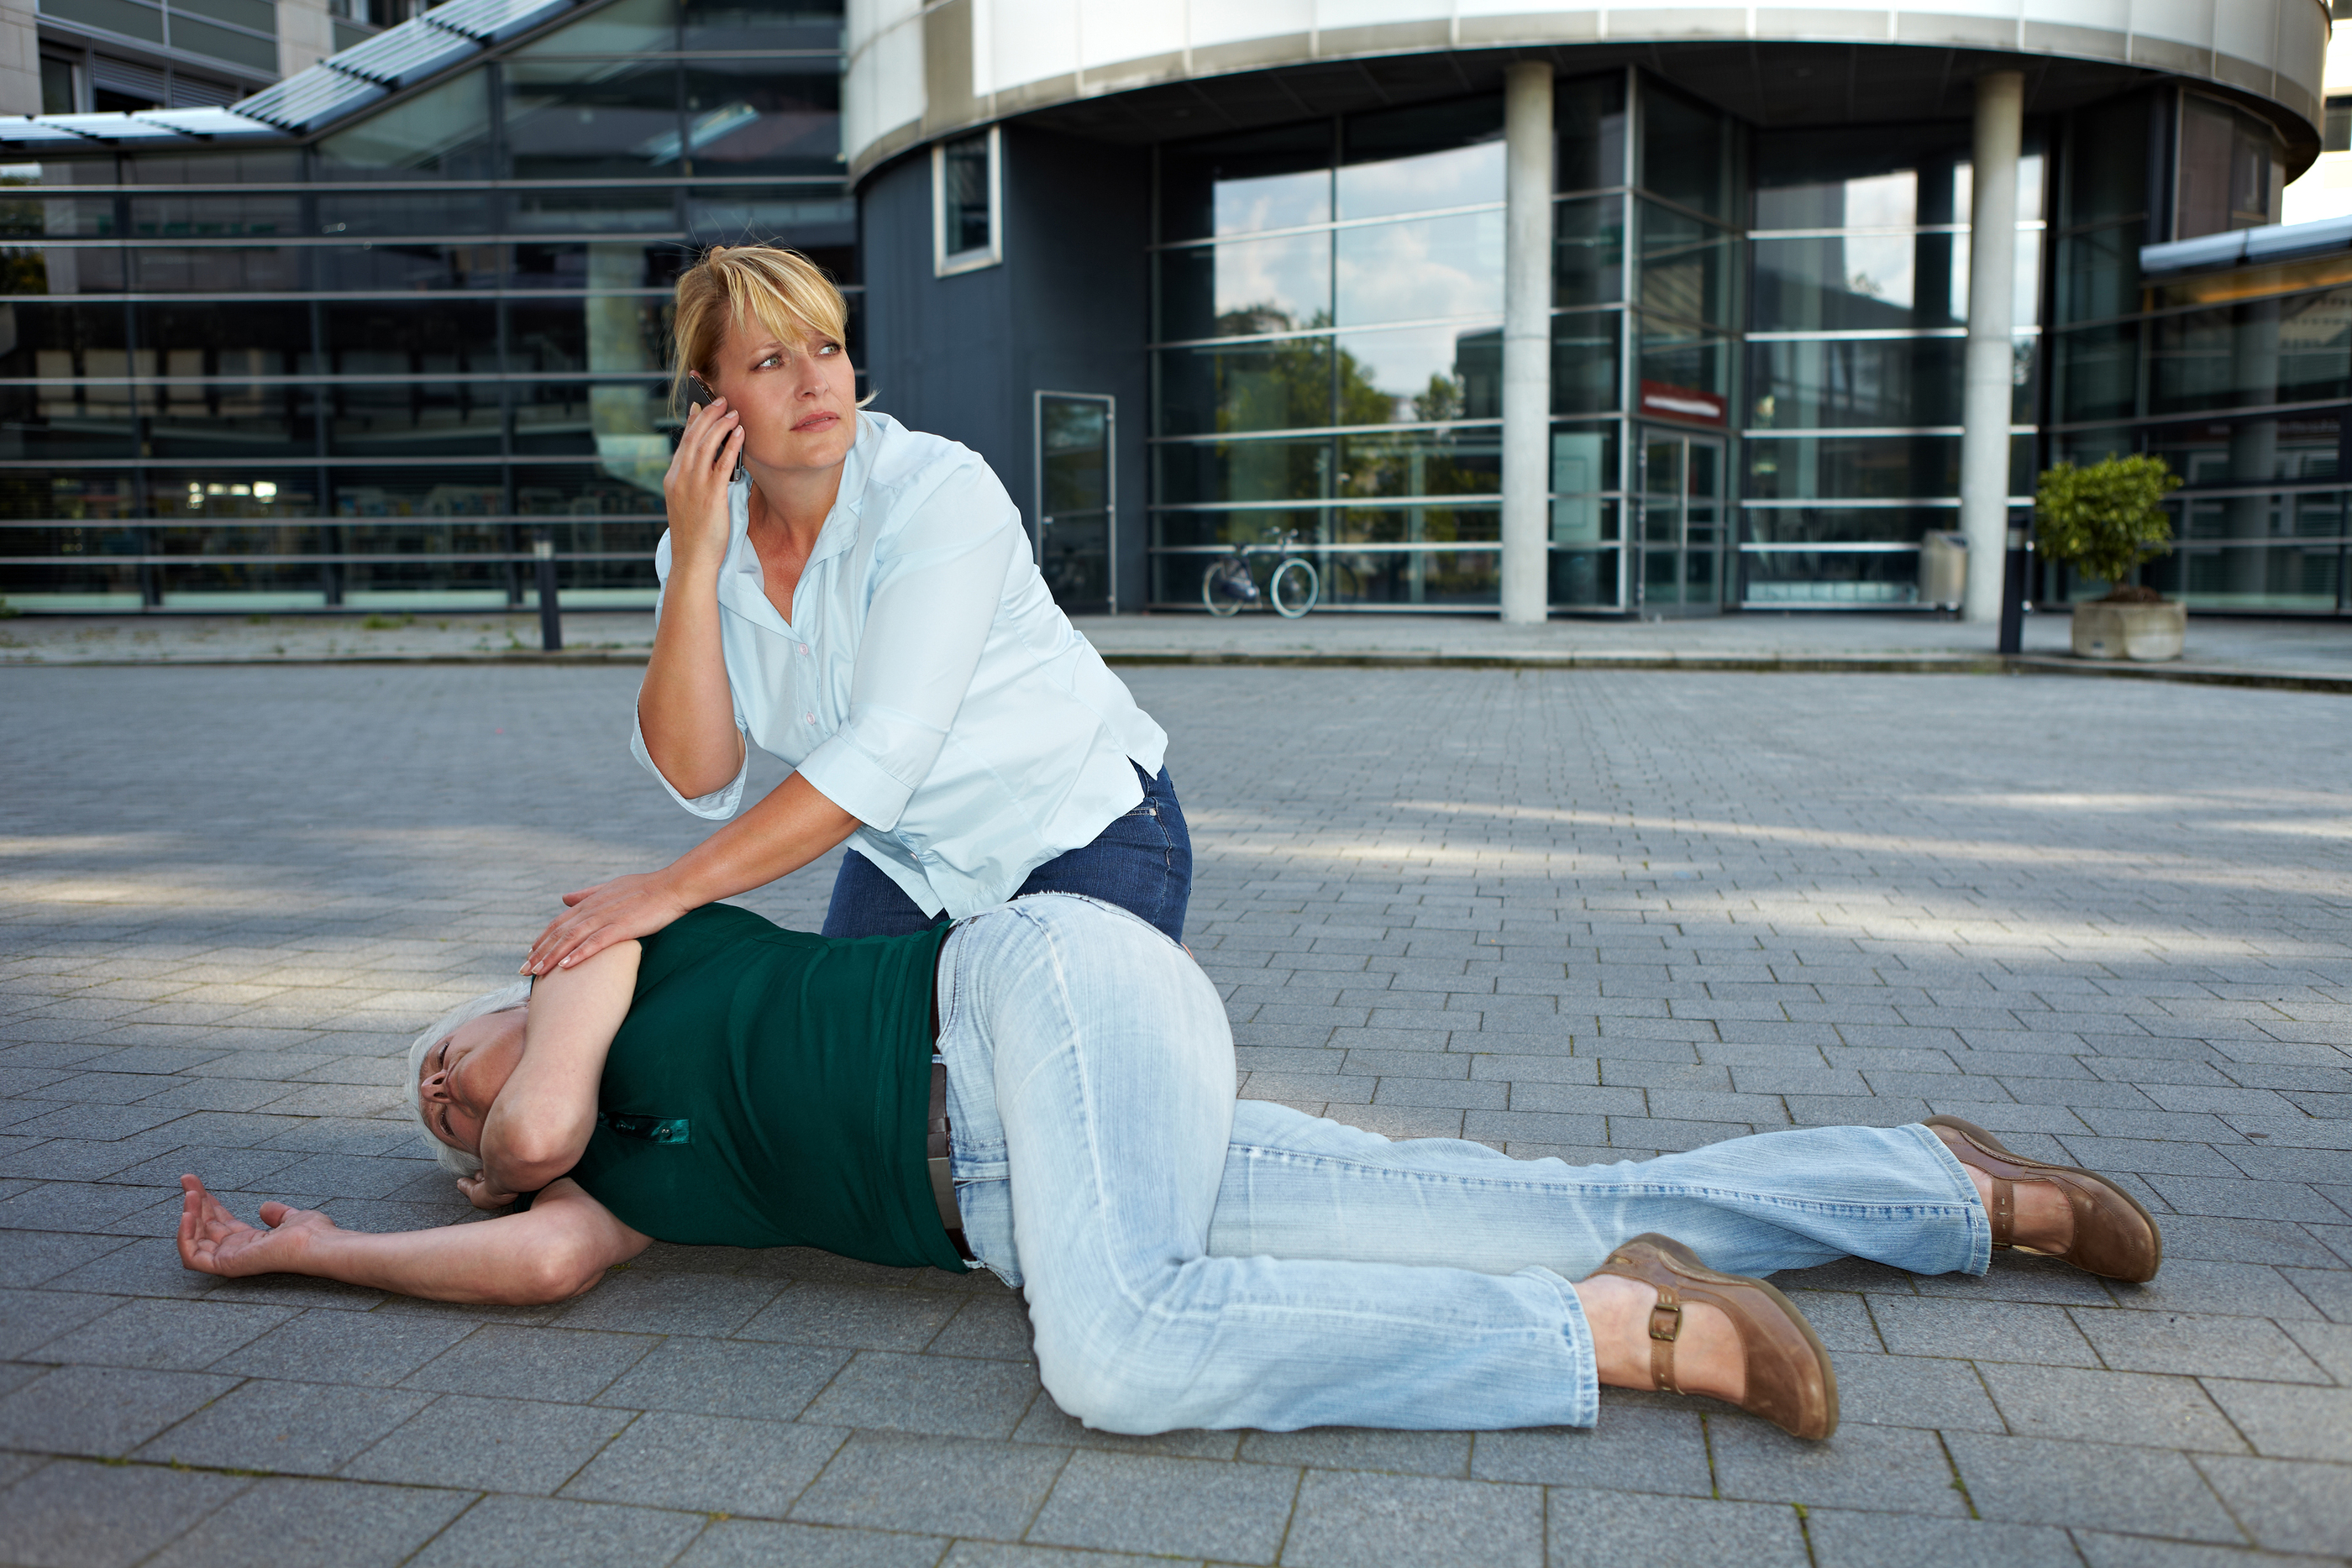 Hospitalization after fainting can do more harm than good - Harvard